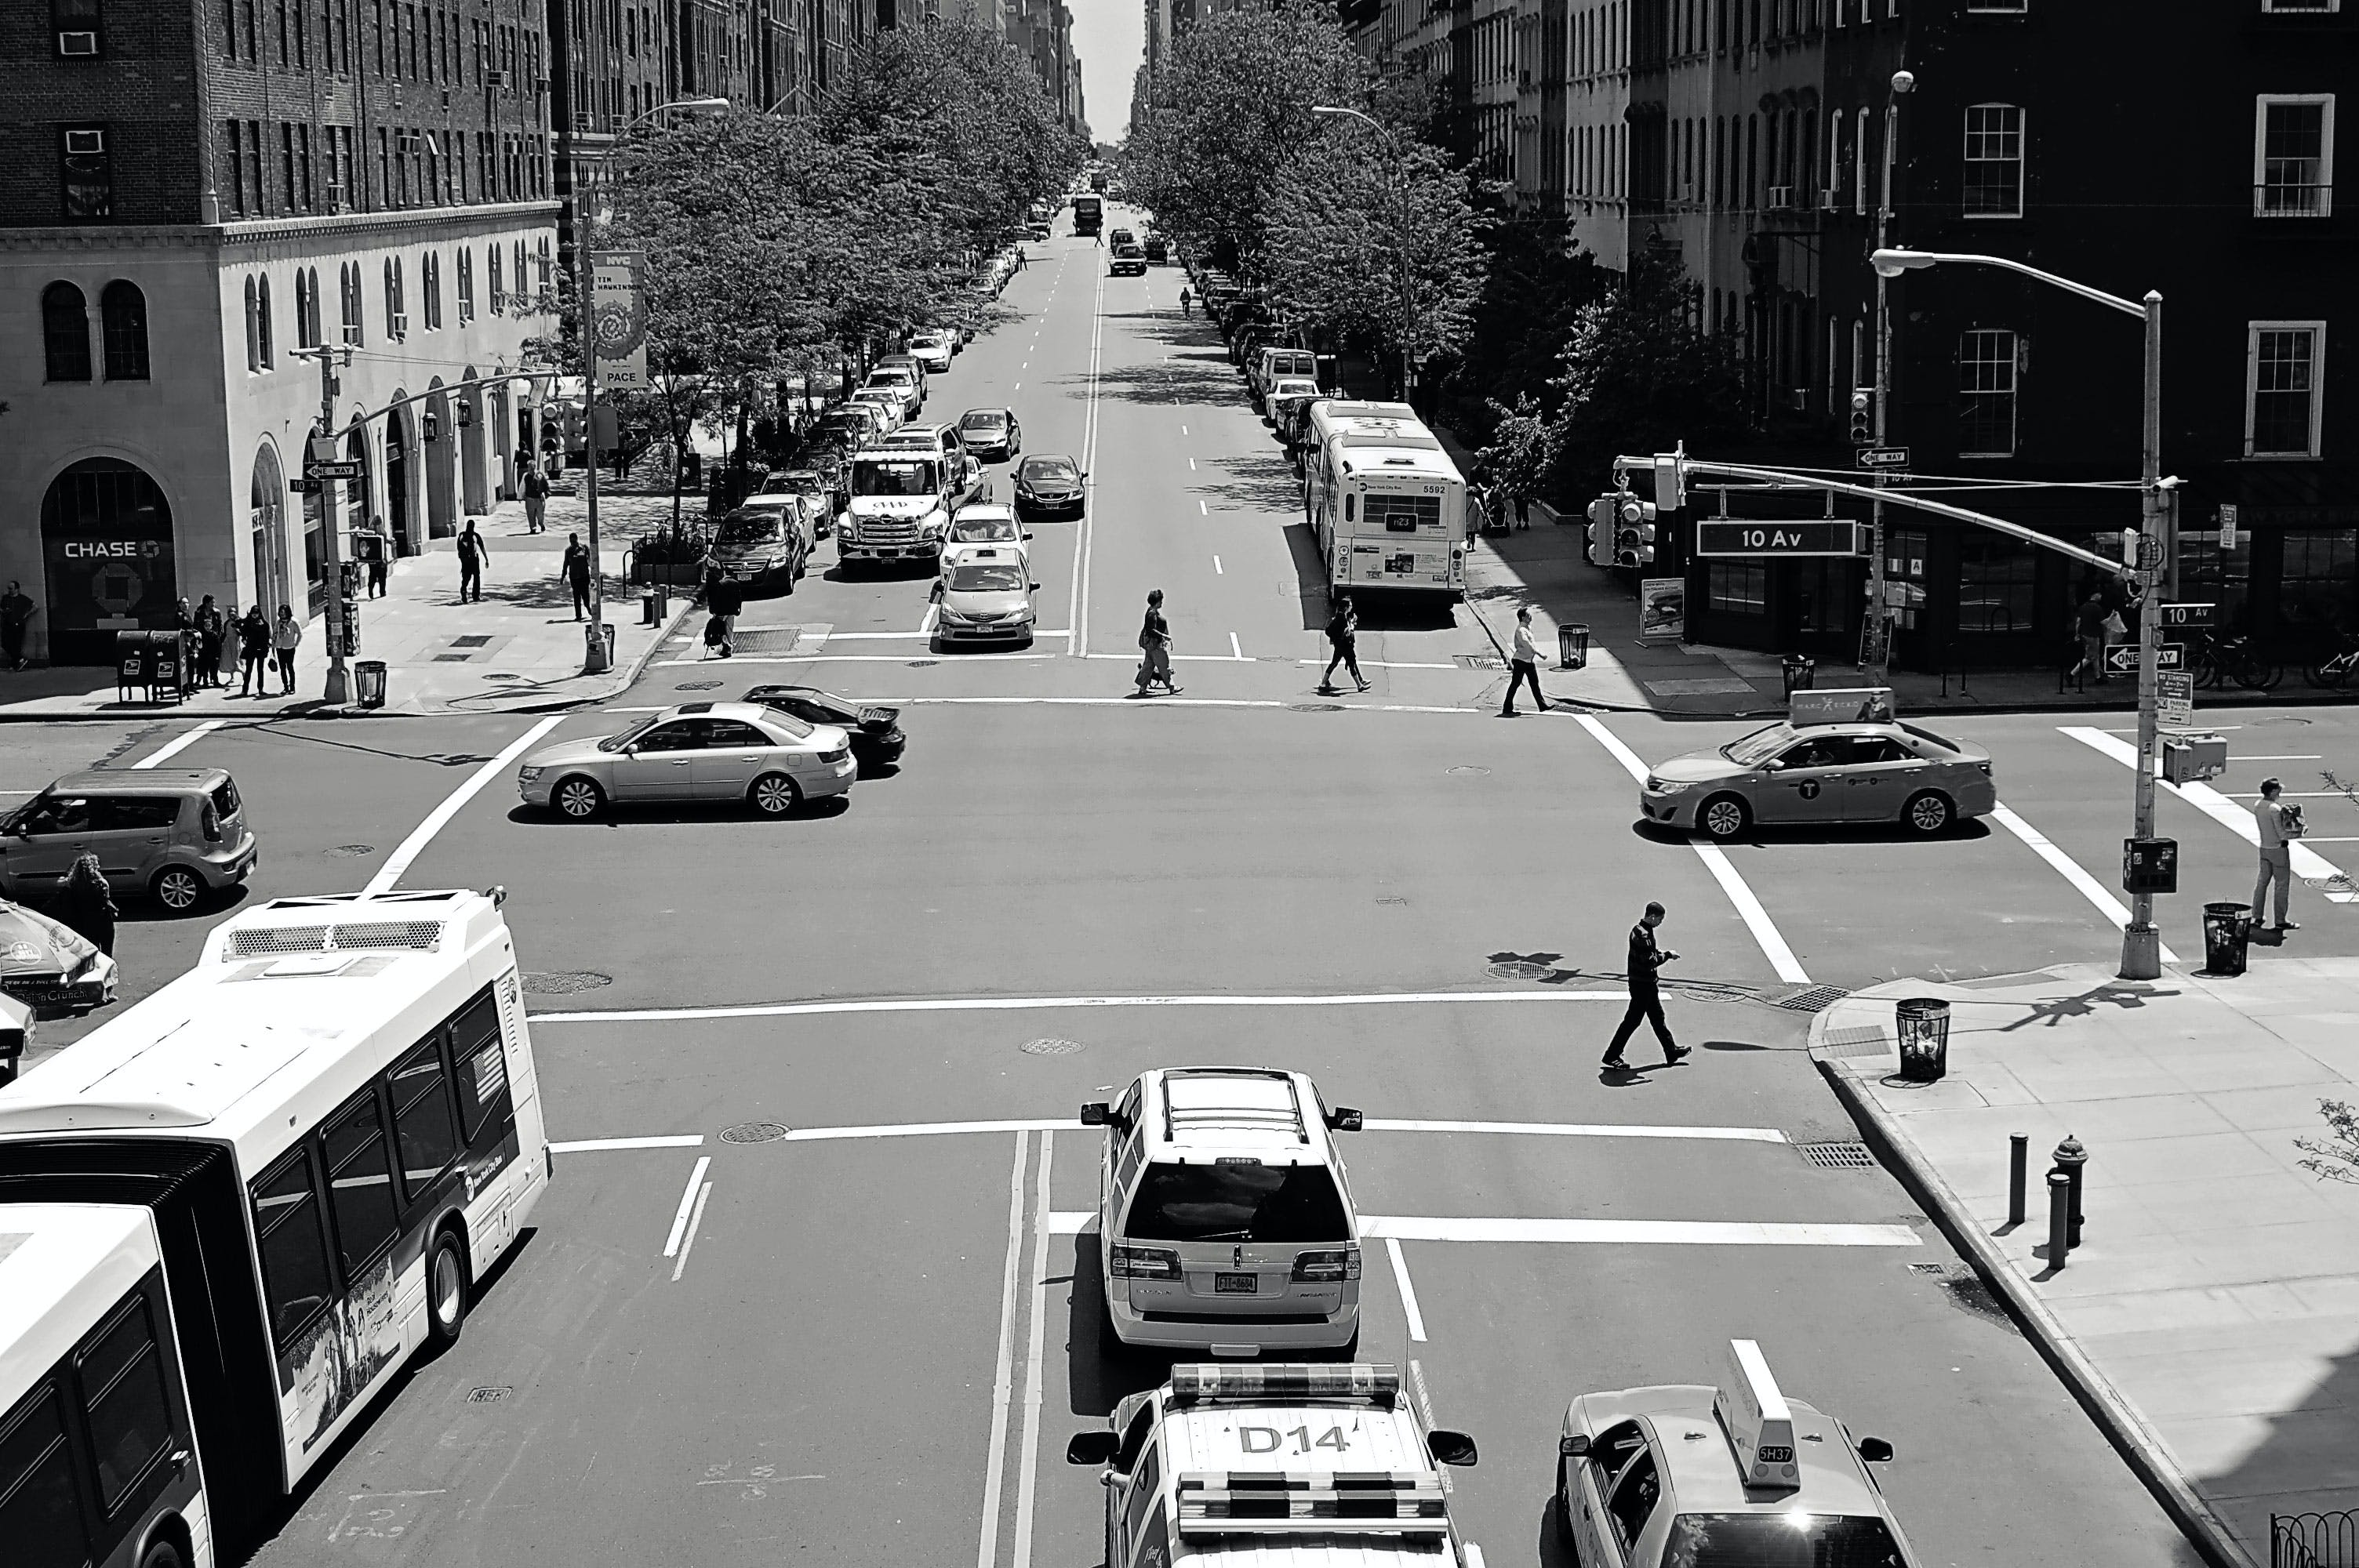 Greyscale Photo of Car and People on Streets